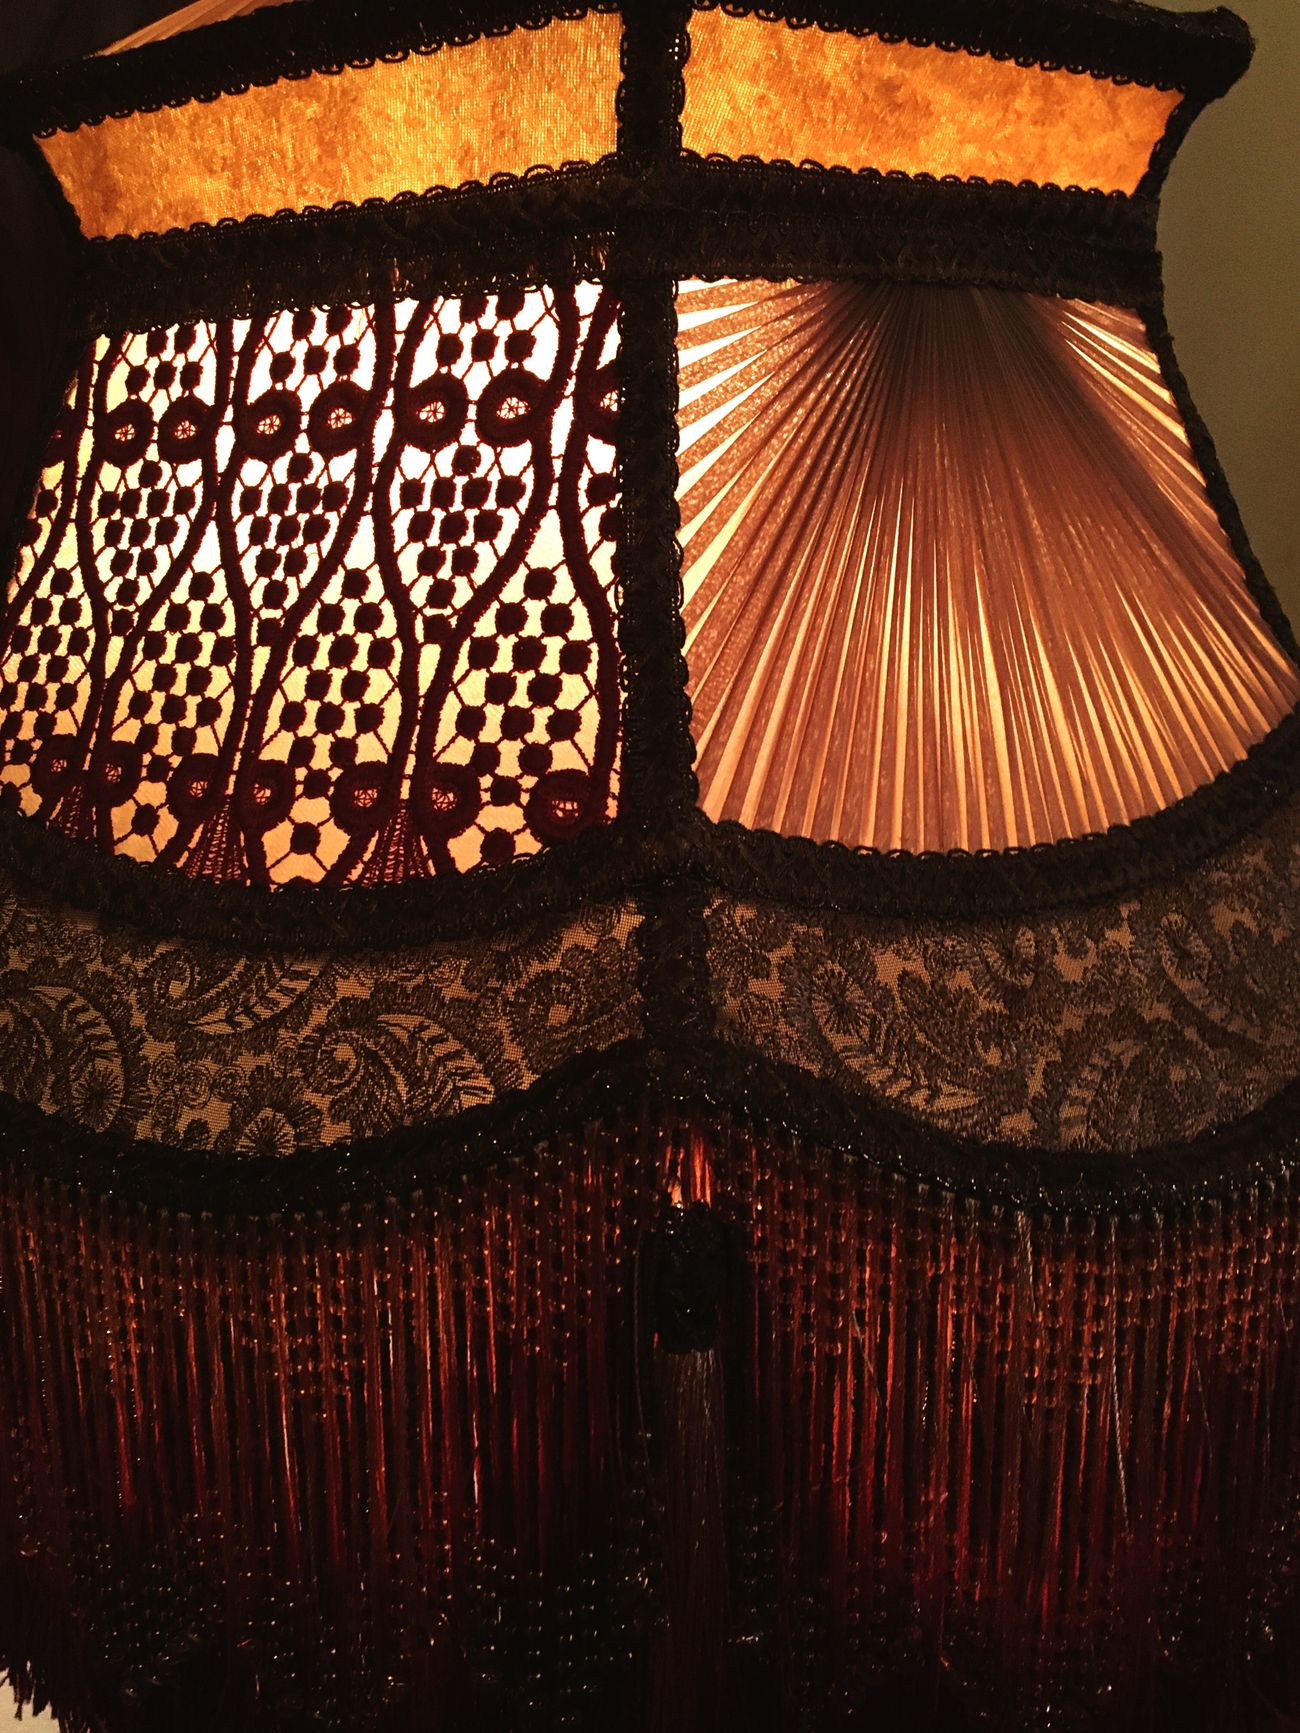 Such beautiful work! Balance Light And Shadow Pattern Art Photography Abstract Photography Columbia River Gorge Troutdale, Oregon Mcmenamins Wood Village Warmth Warm Colors Warm Lighting Victorian Style Charm Sparkle Victorian Lighting Lampshade Victorian Fringe